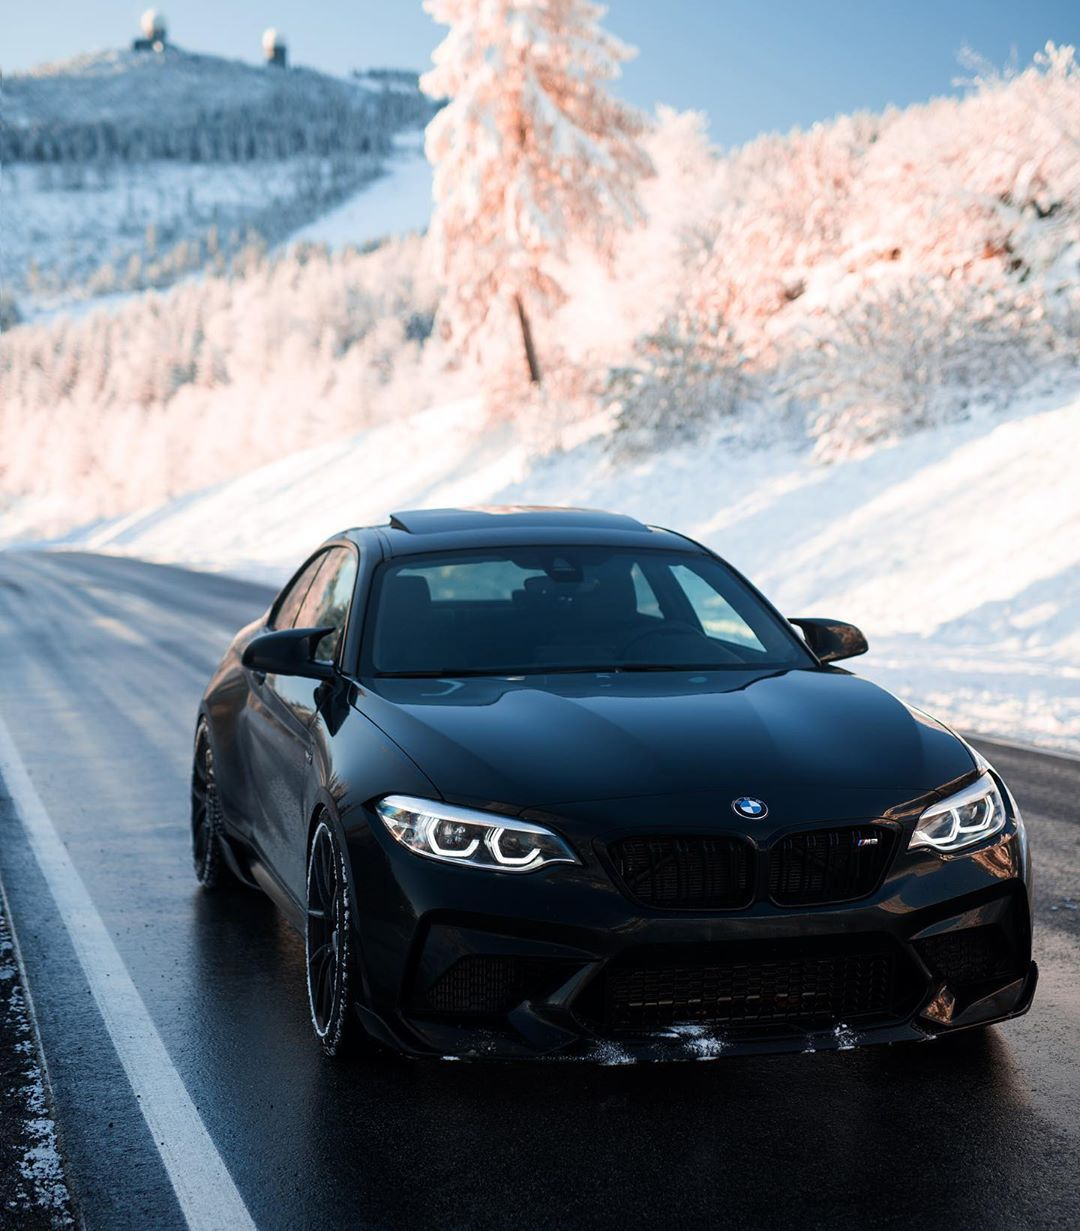 Mybmwadventures M2 Competition On Instagram Today Right After Sunrise Are You Ready For Those Winter Shots Yet Bmw M2 Competition M2 Competition Bmw M2